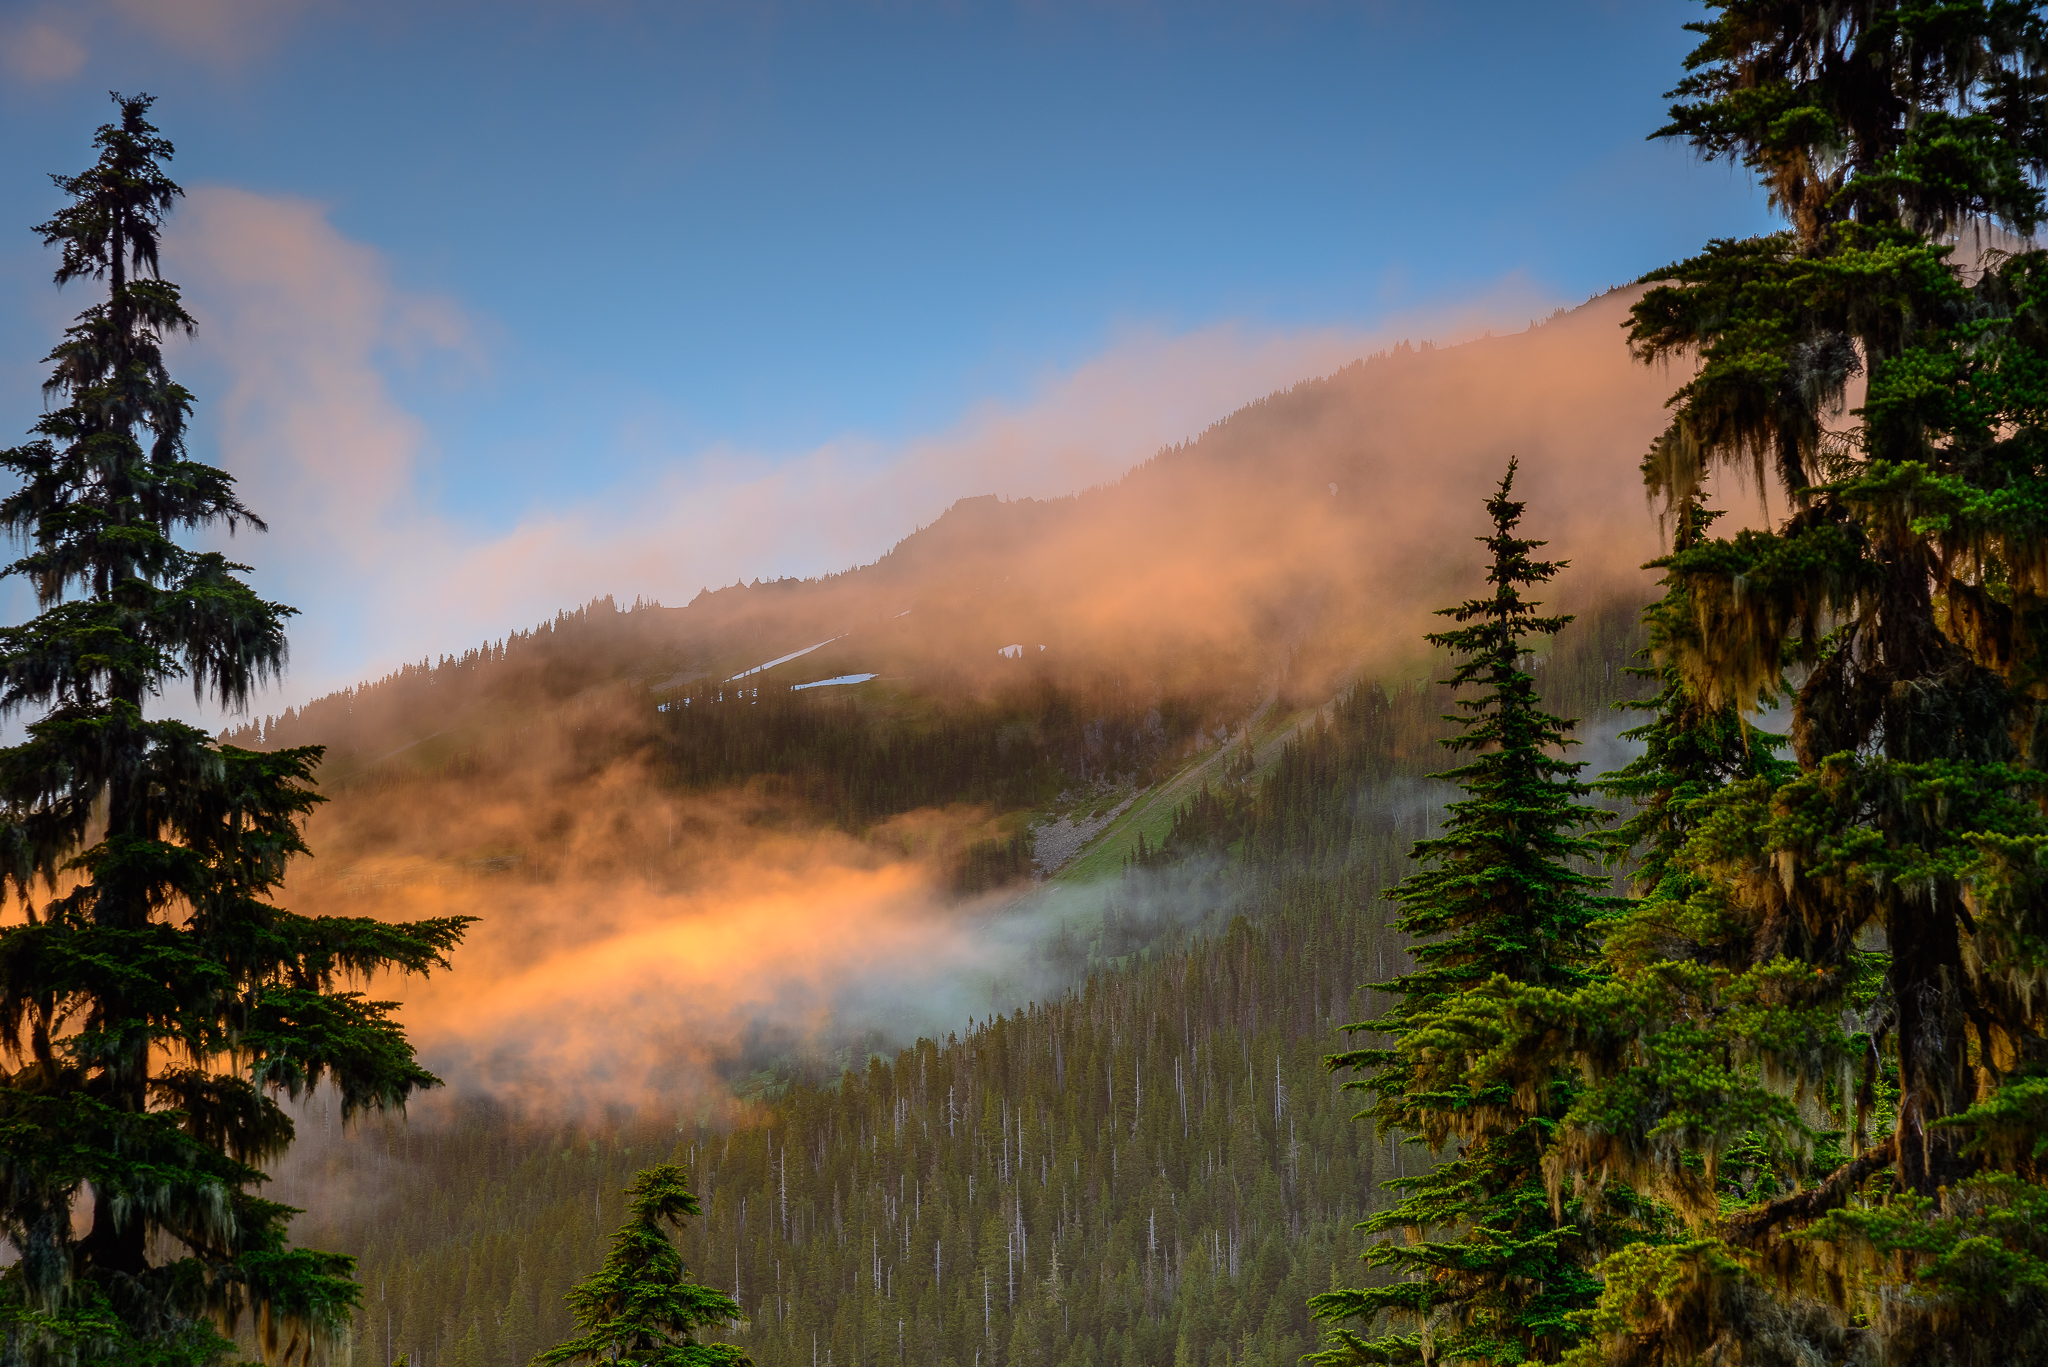 Concert like light effects spill into the Seven Lakes Basin region of Olympic National Park, WA.